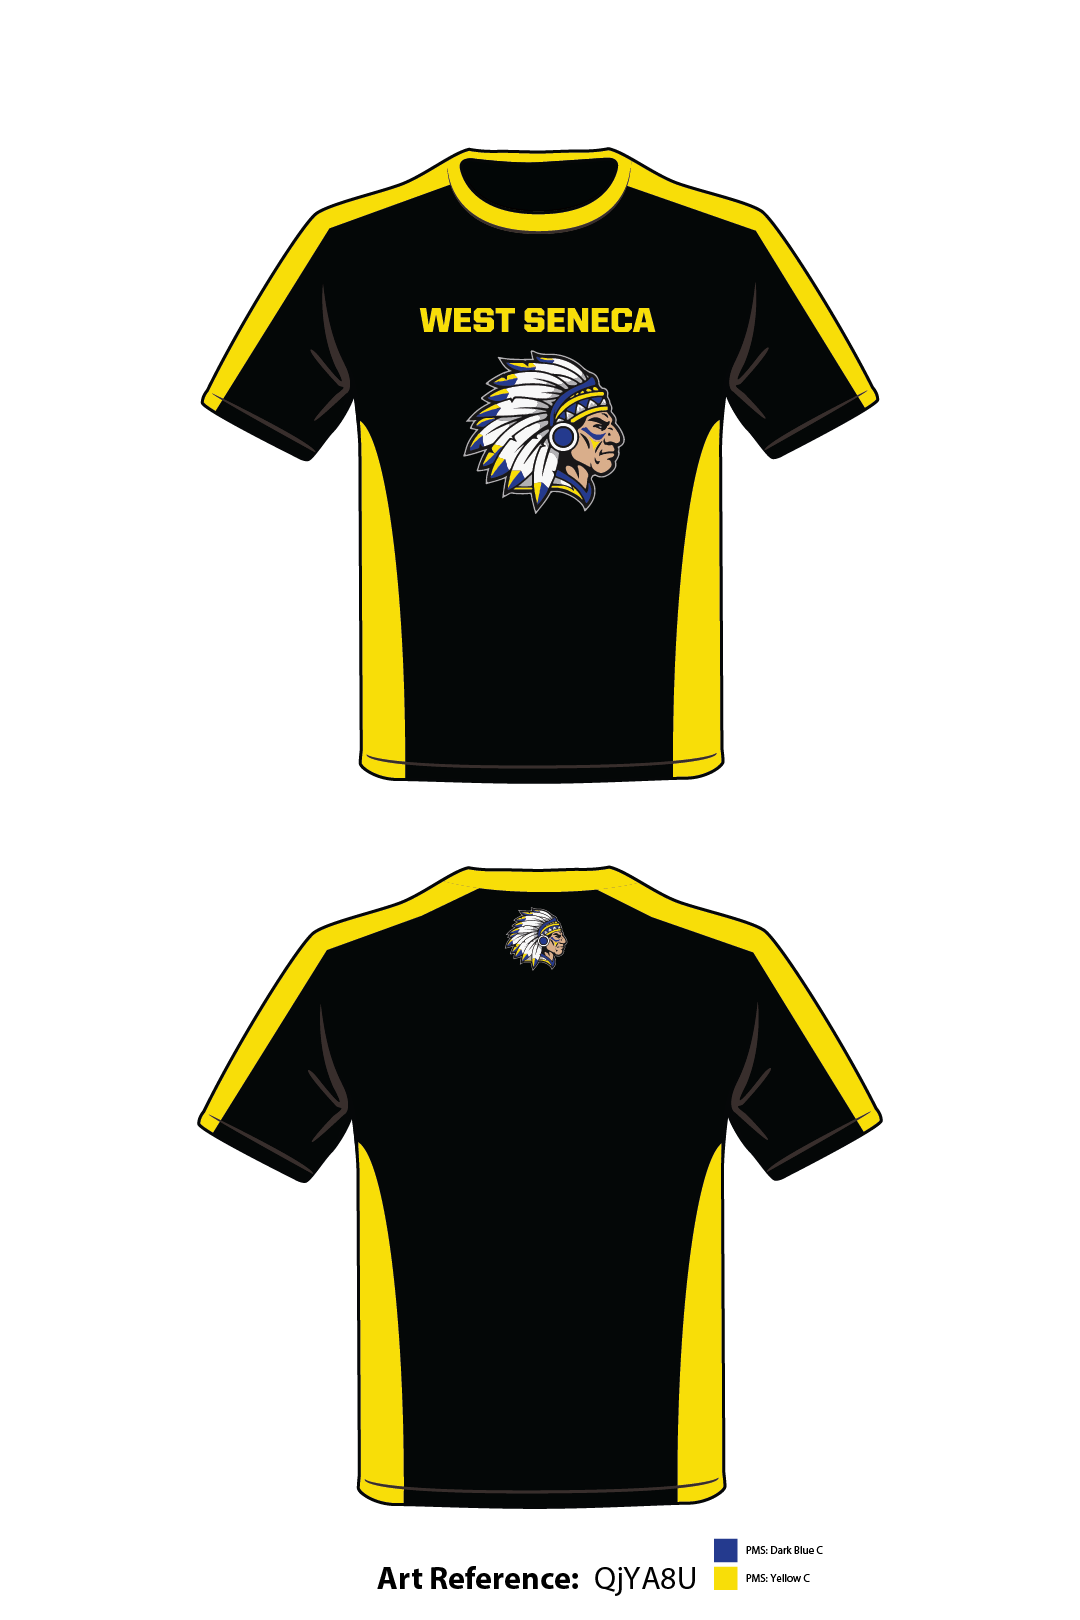 West Track T-shirt